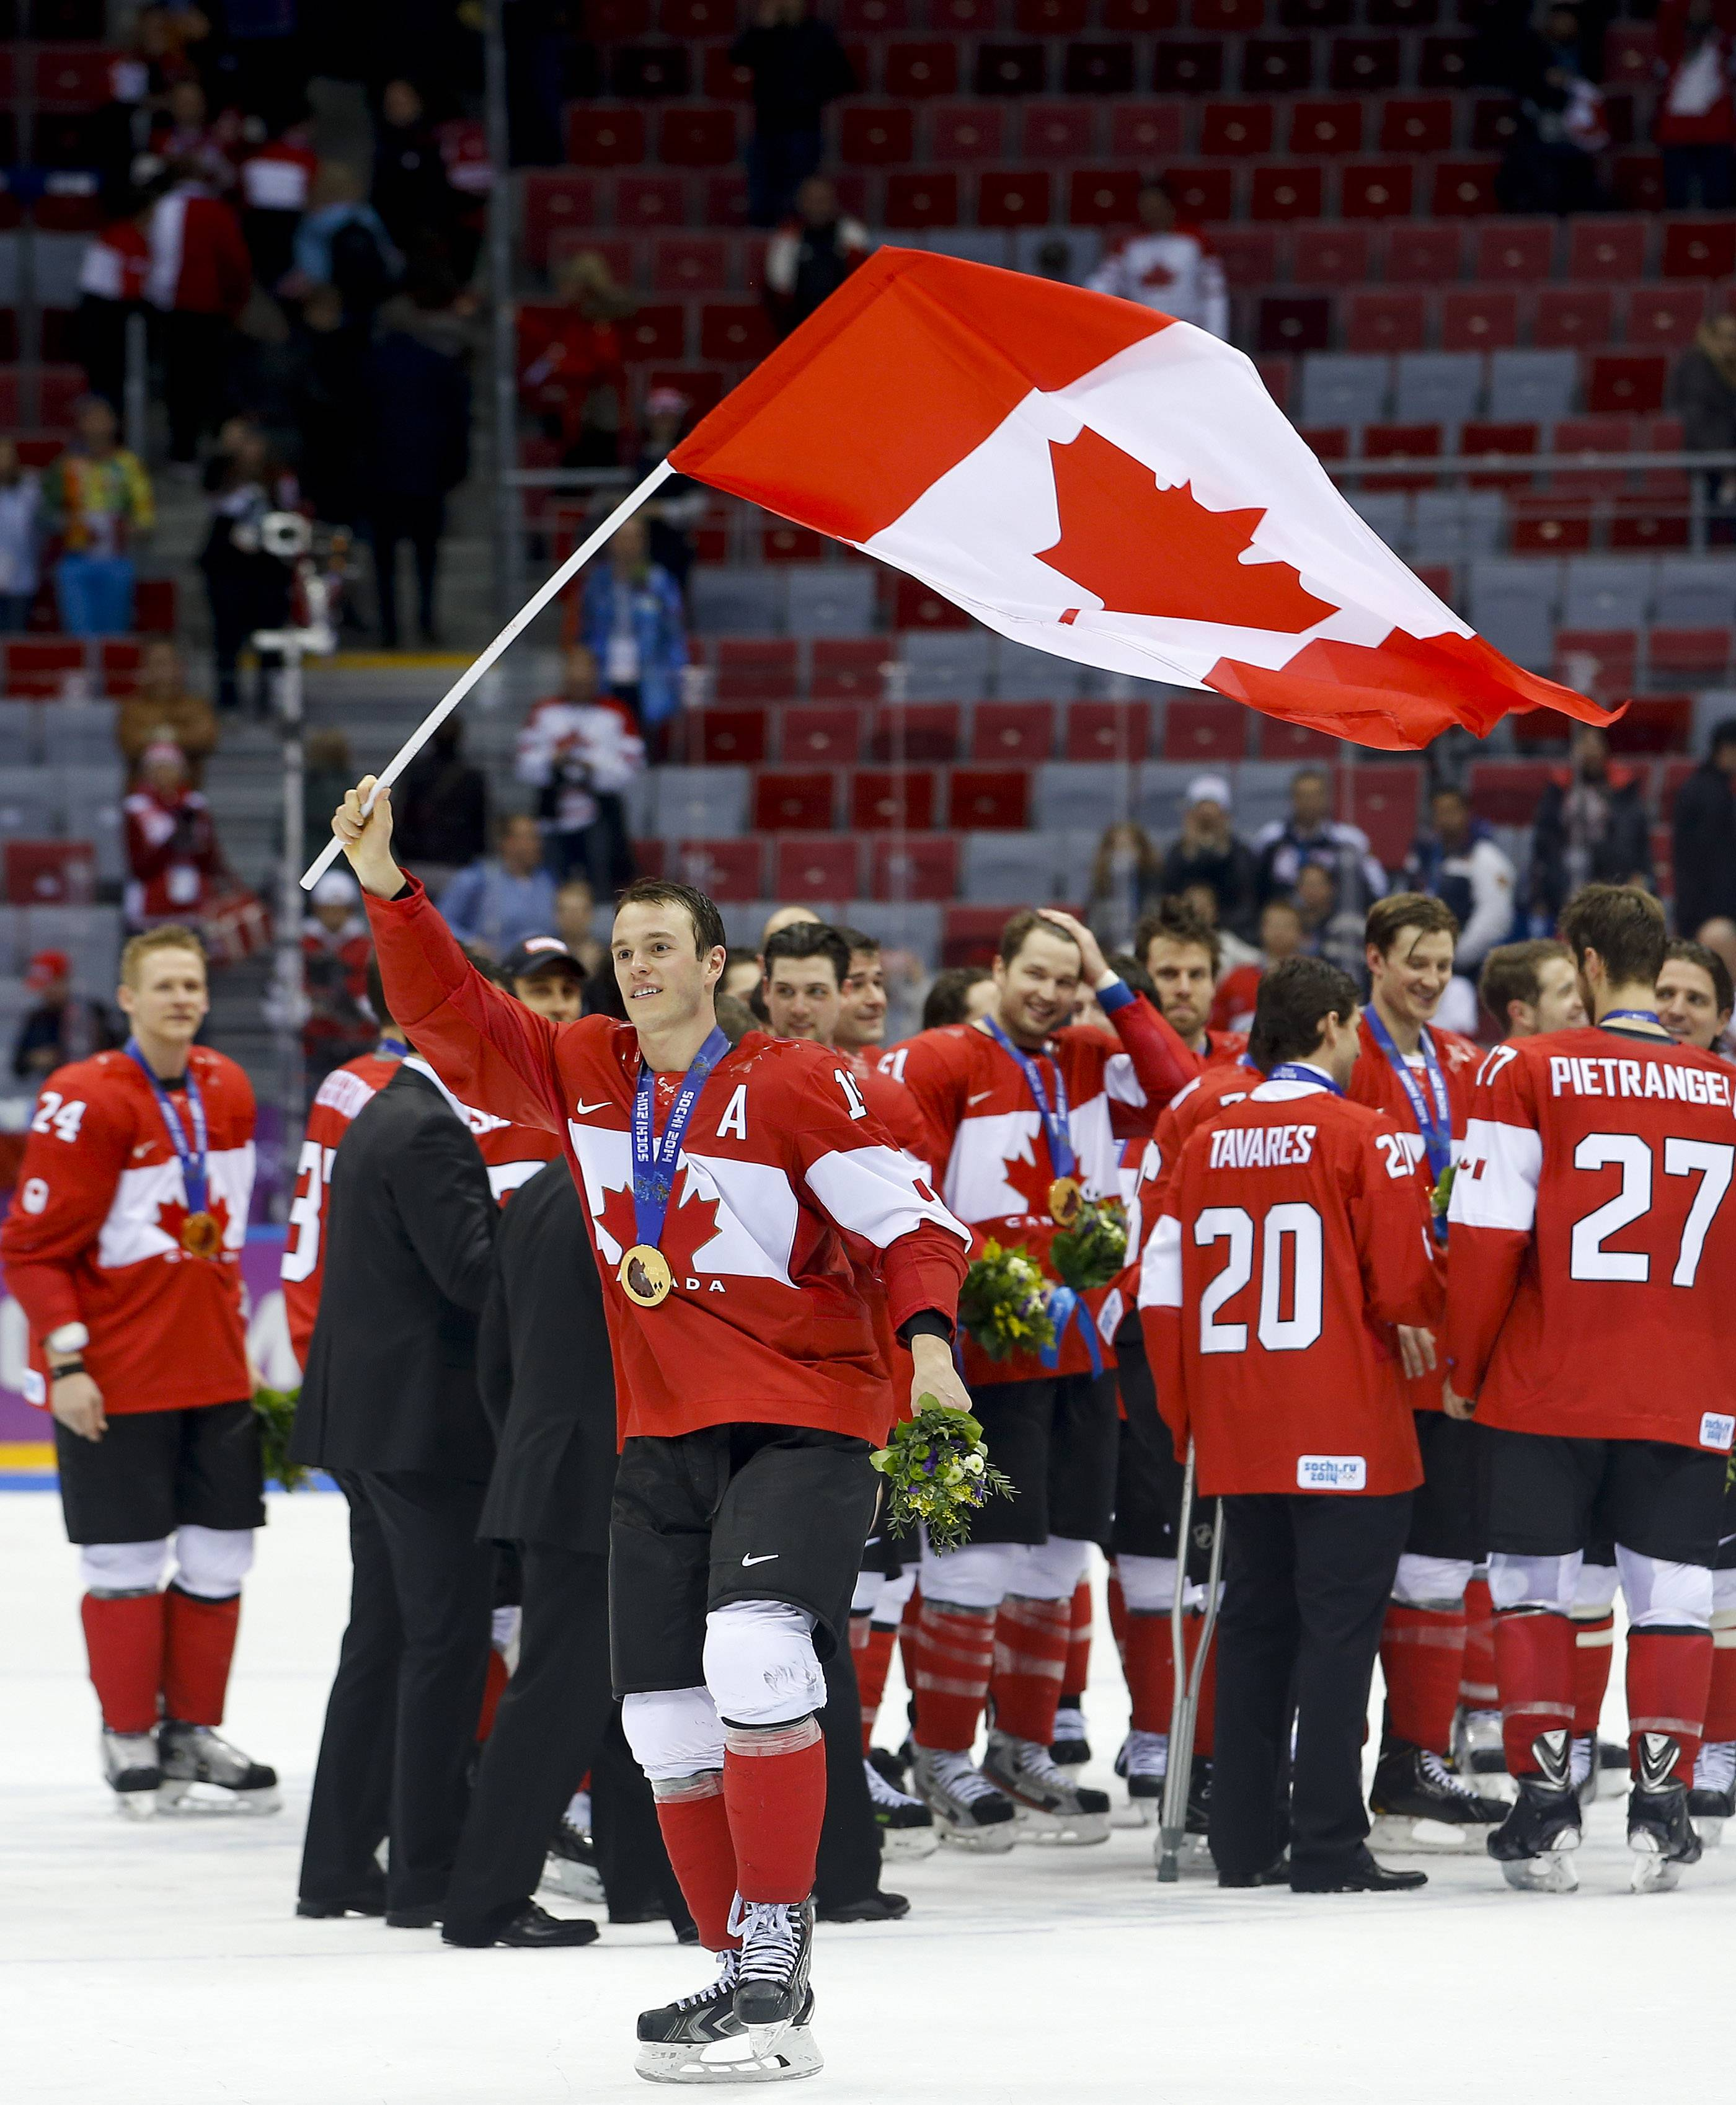 Canada forward Jonathan Toews waves the Canadian flag after Canada beat Sweden 3-0 in the men's gold medal ice hockey game at the 2014 Winter Olympics, Sunday, Feb. 23, 2014, in Sochi, Russia.